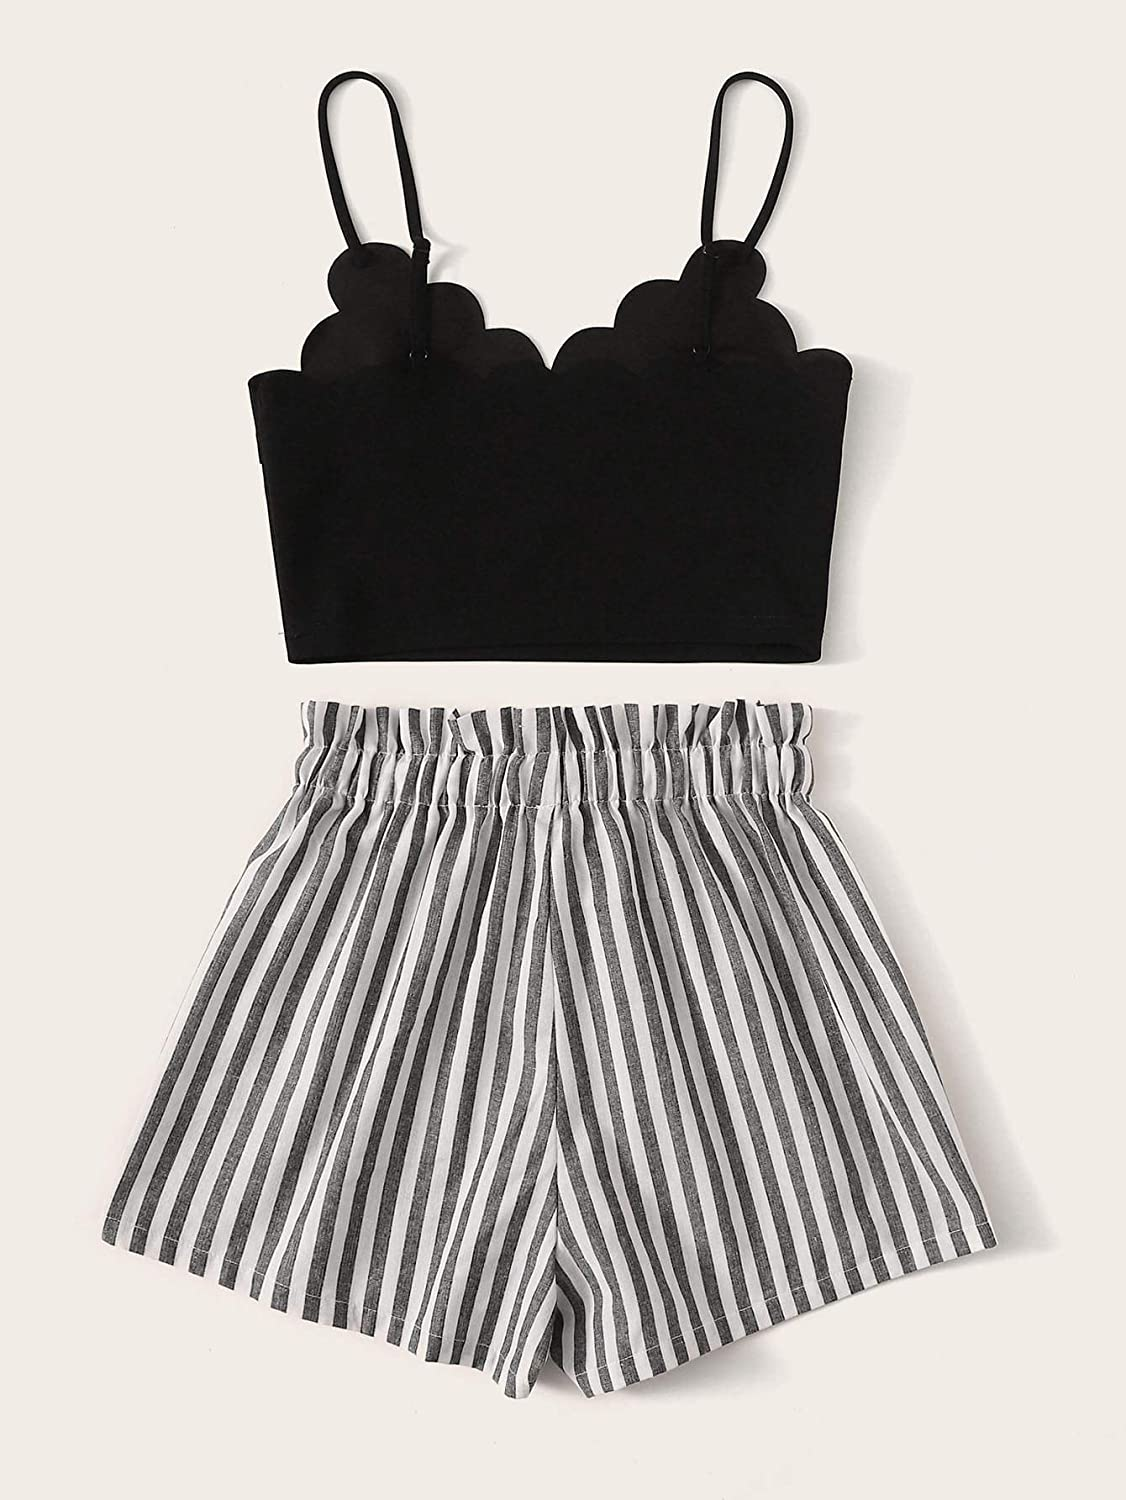 MakeMeChic Womens 2 Piece Outfit Summer Striped V Neck Crop Cami Top with Shorts